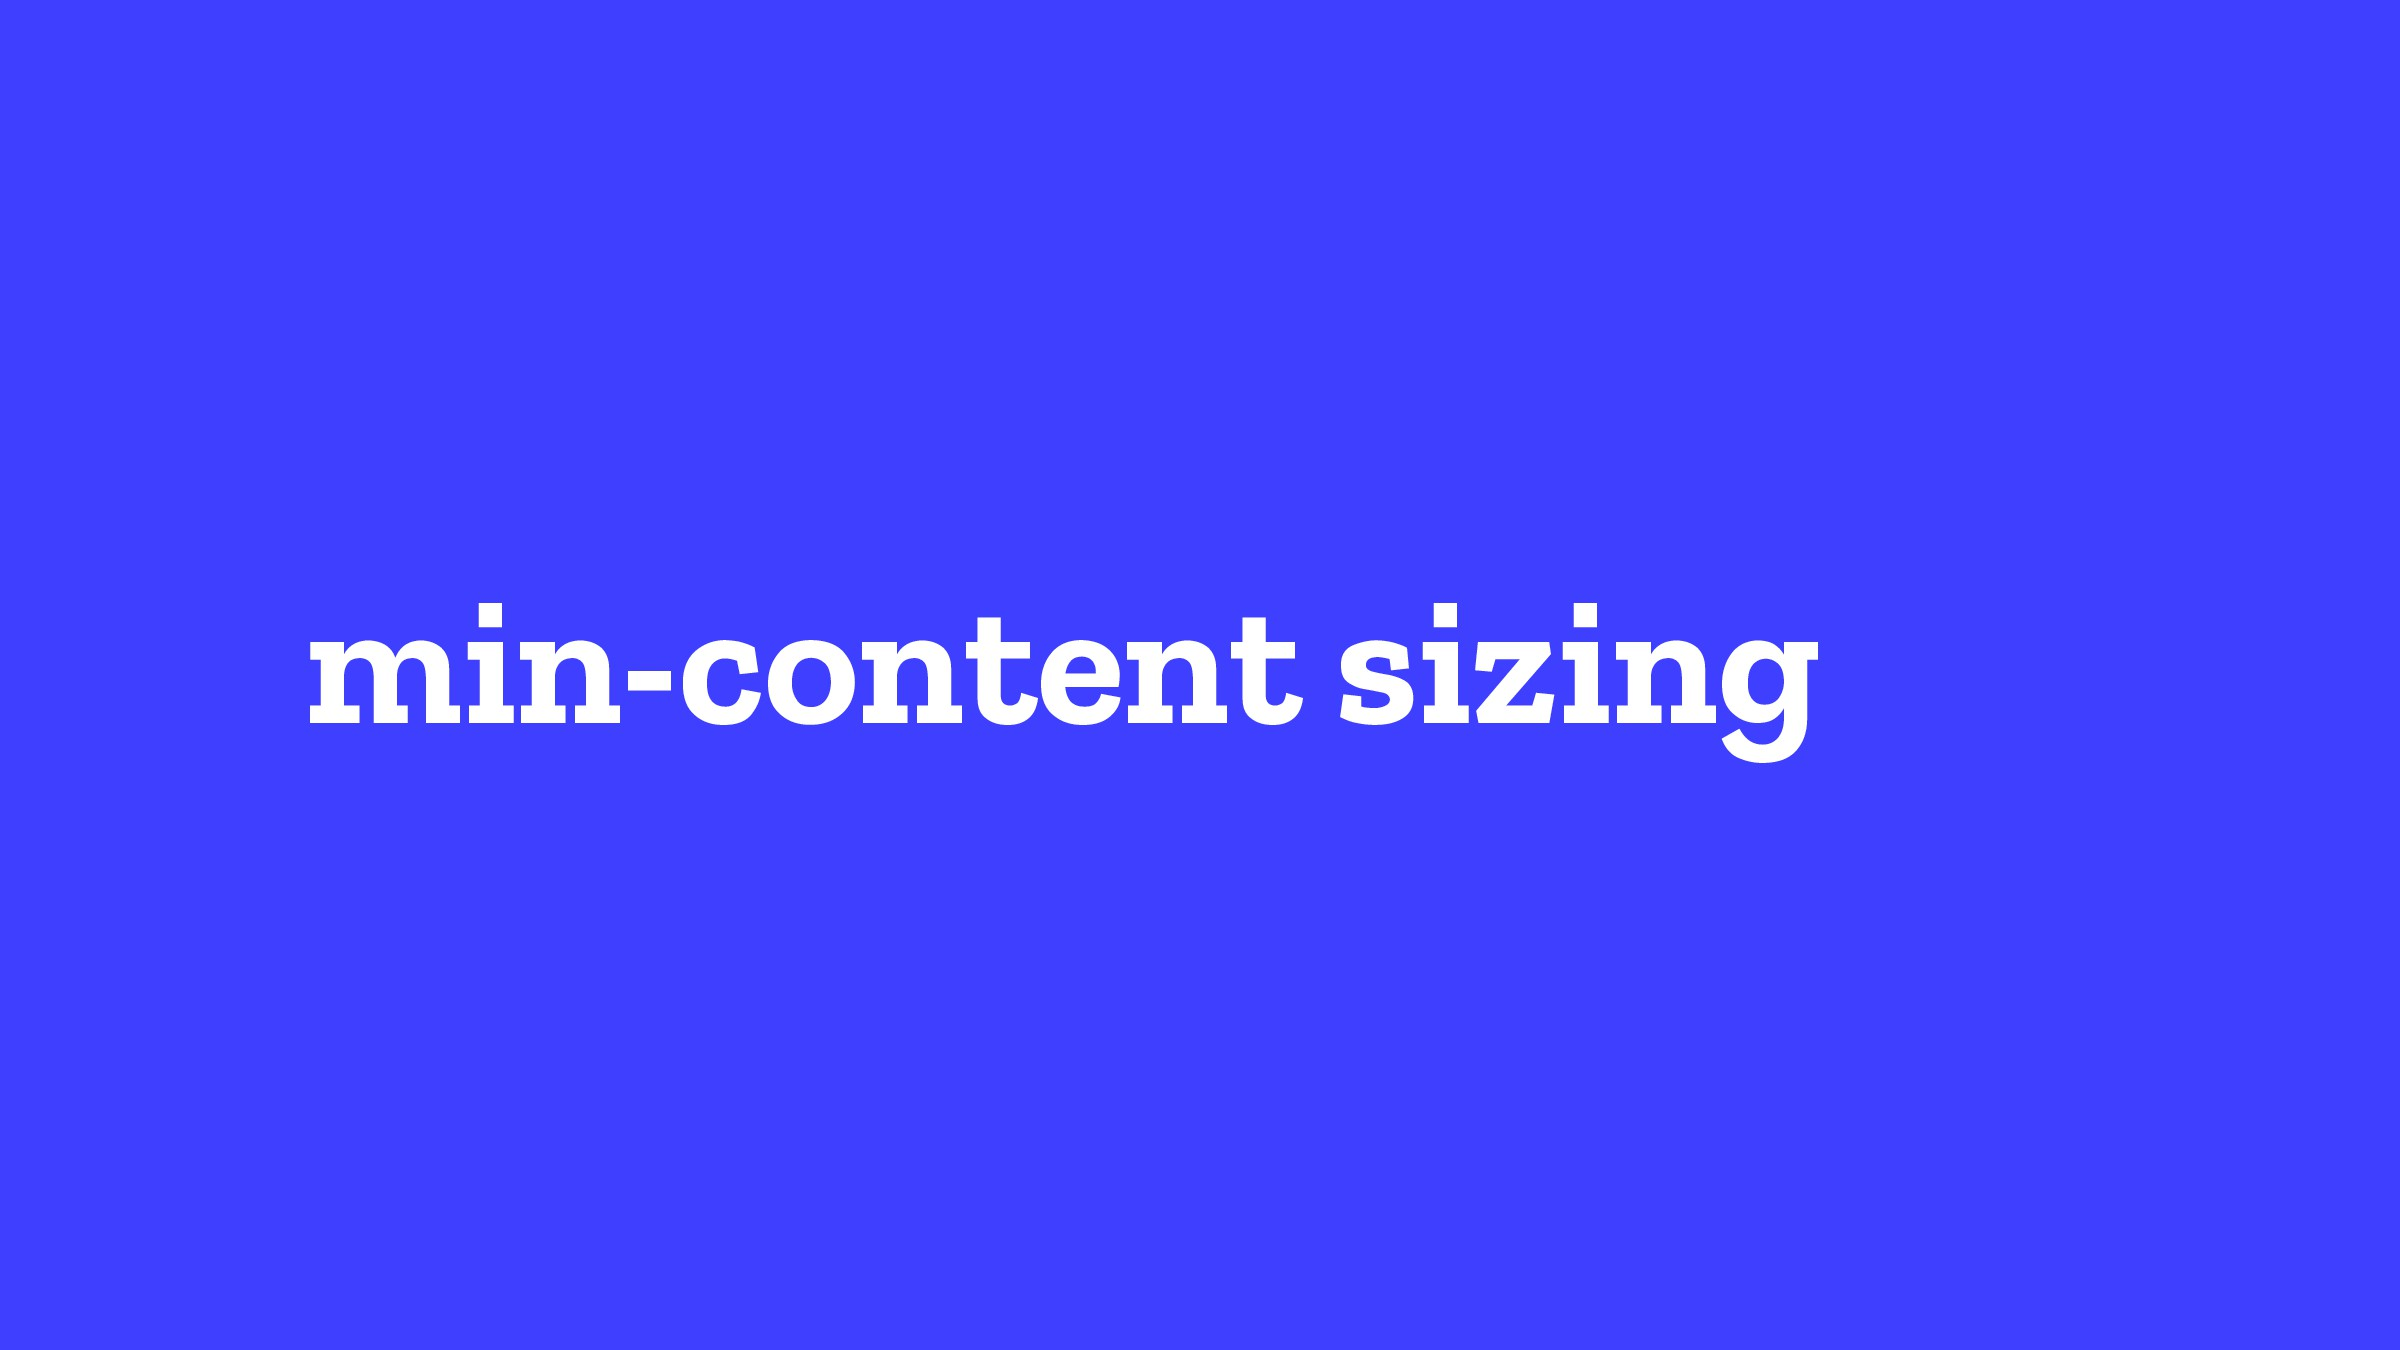 min-content sizing